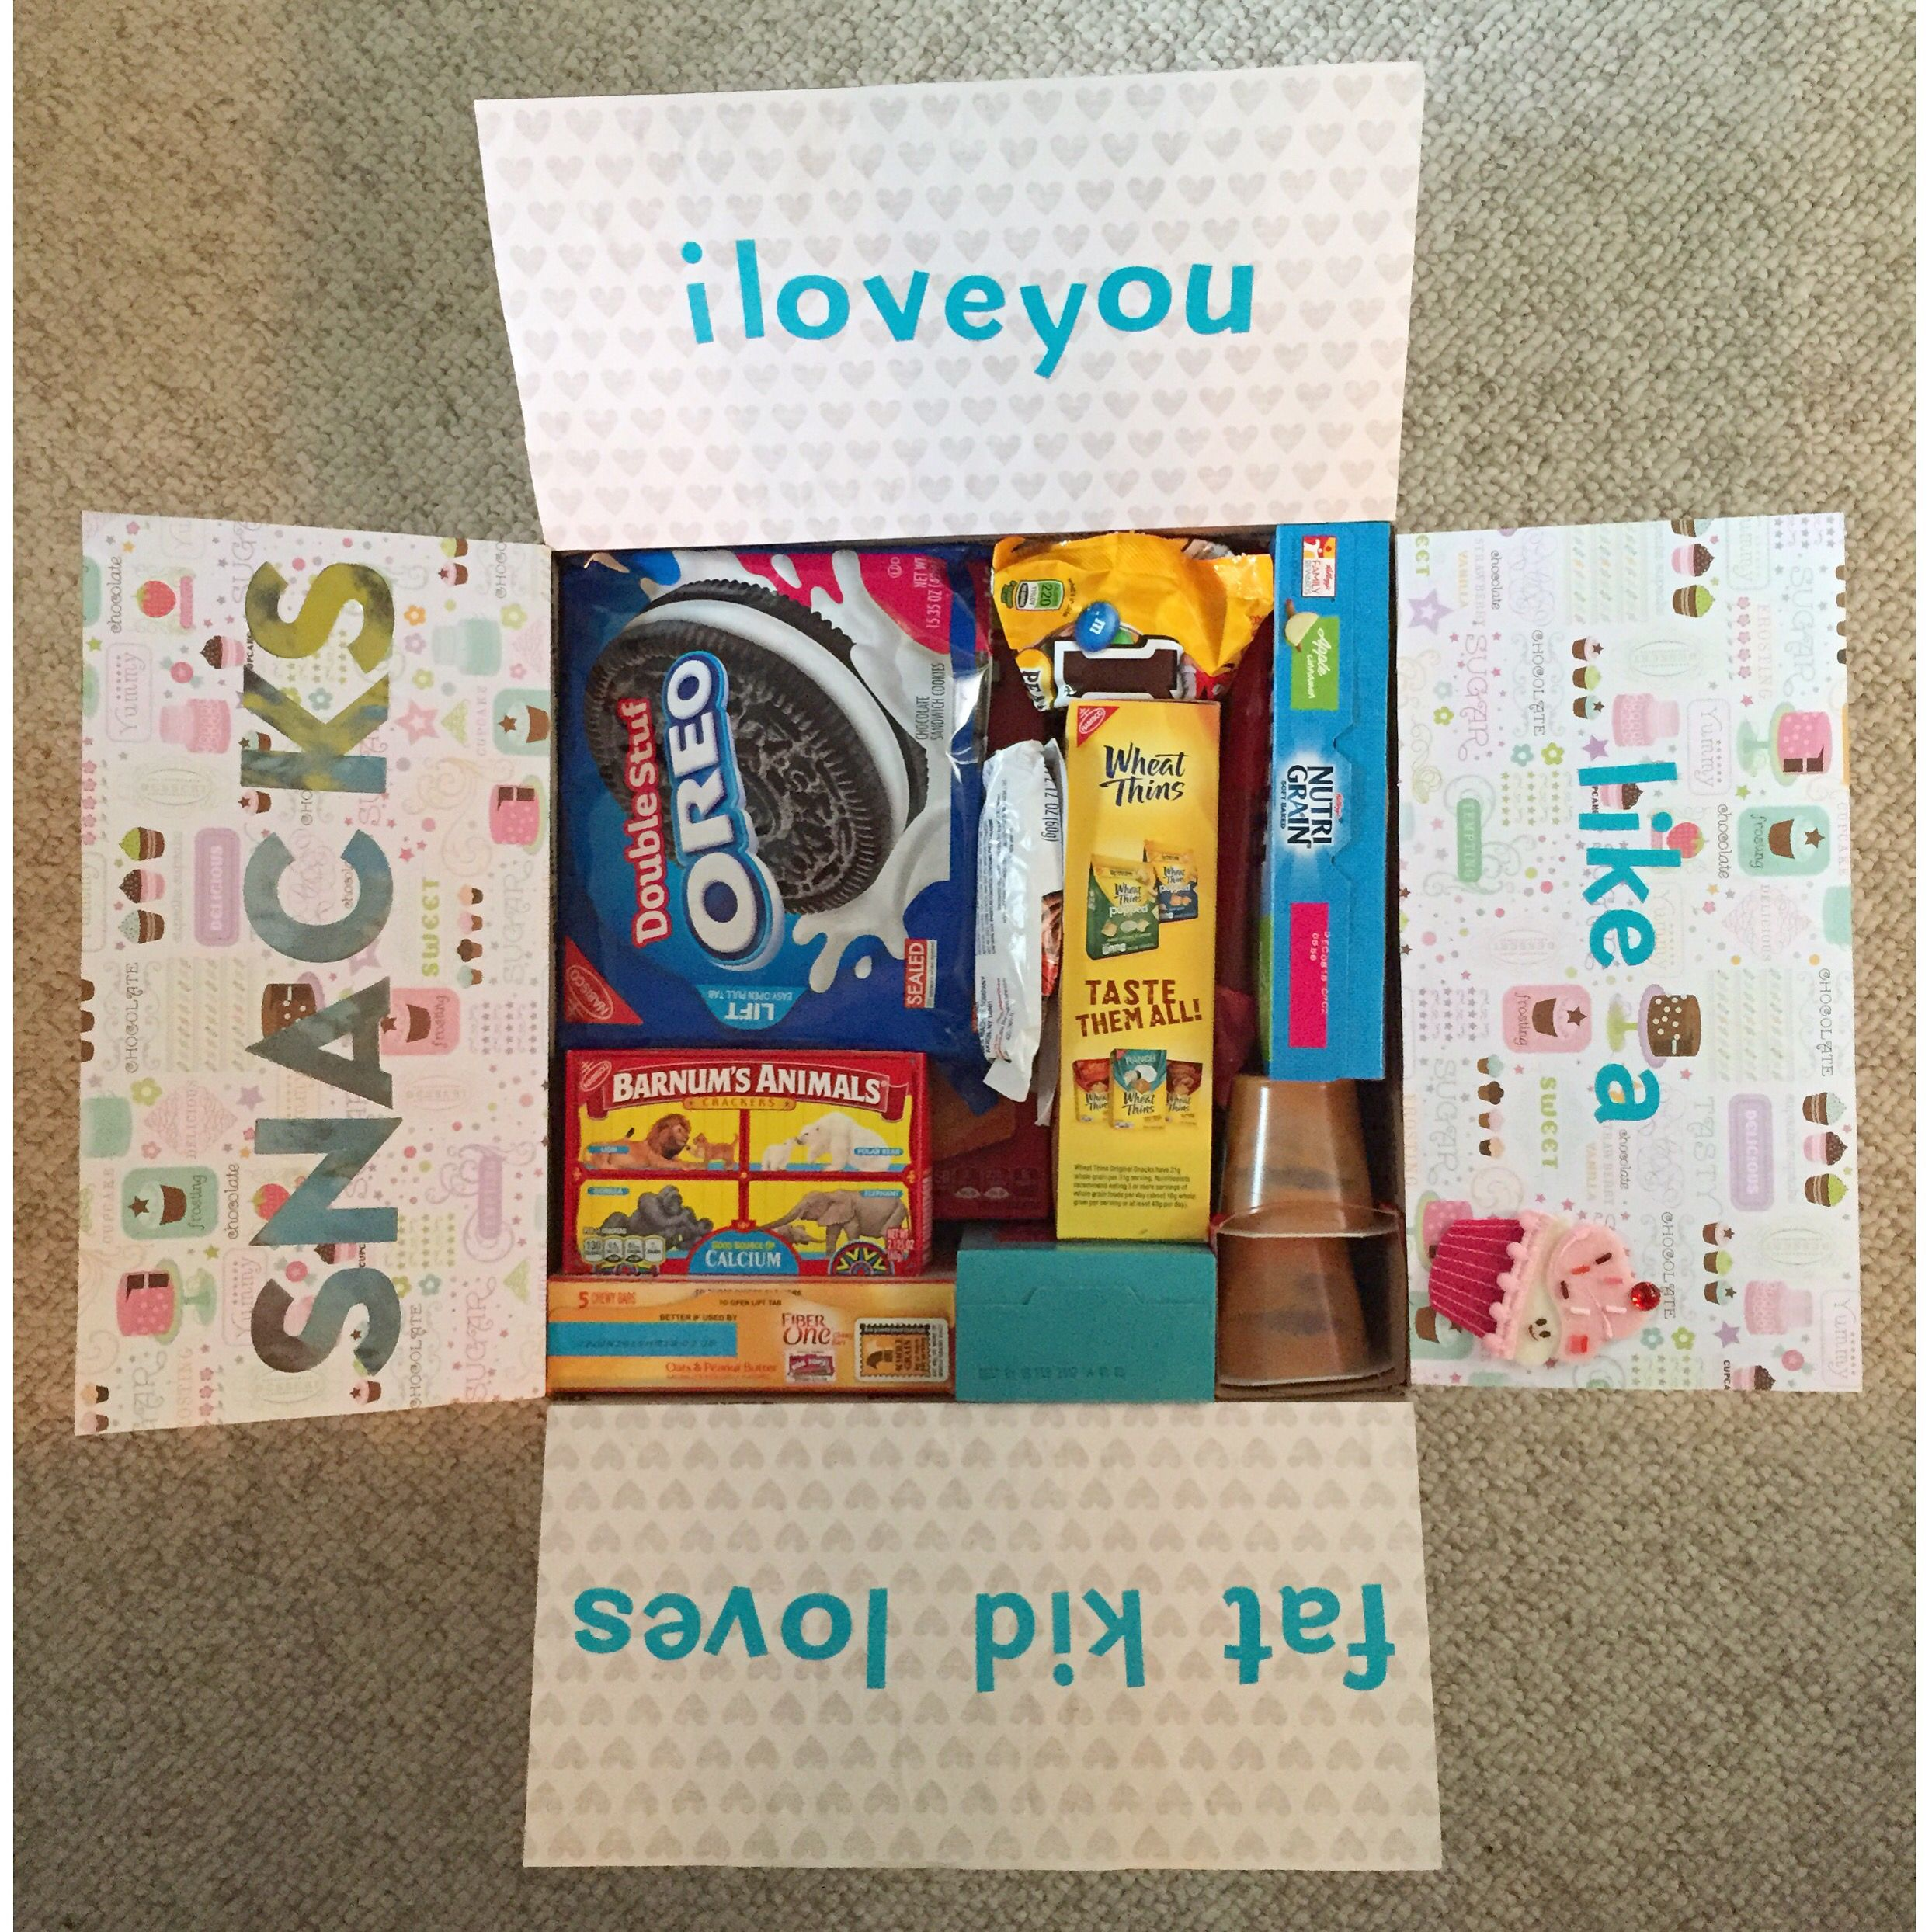 I love you military care package theme snacks! Military